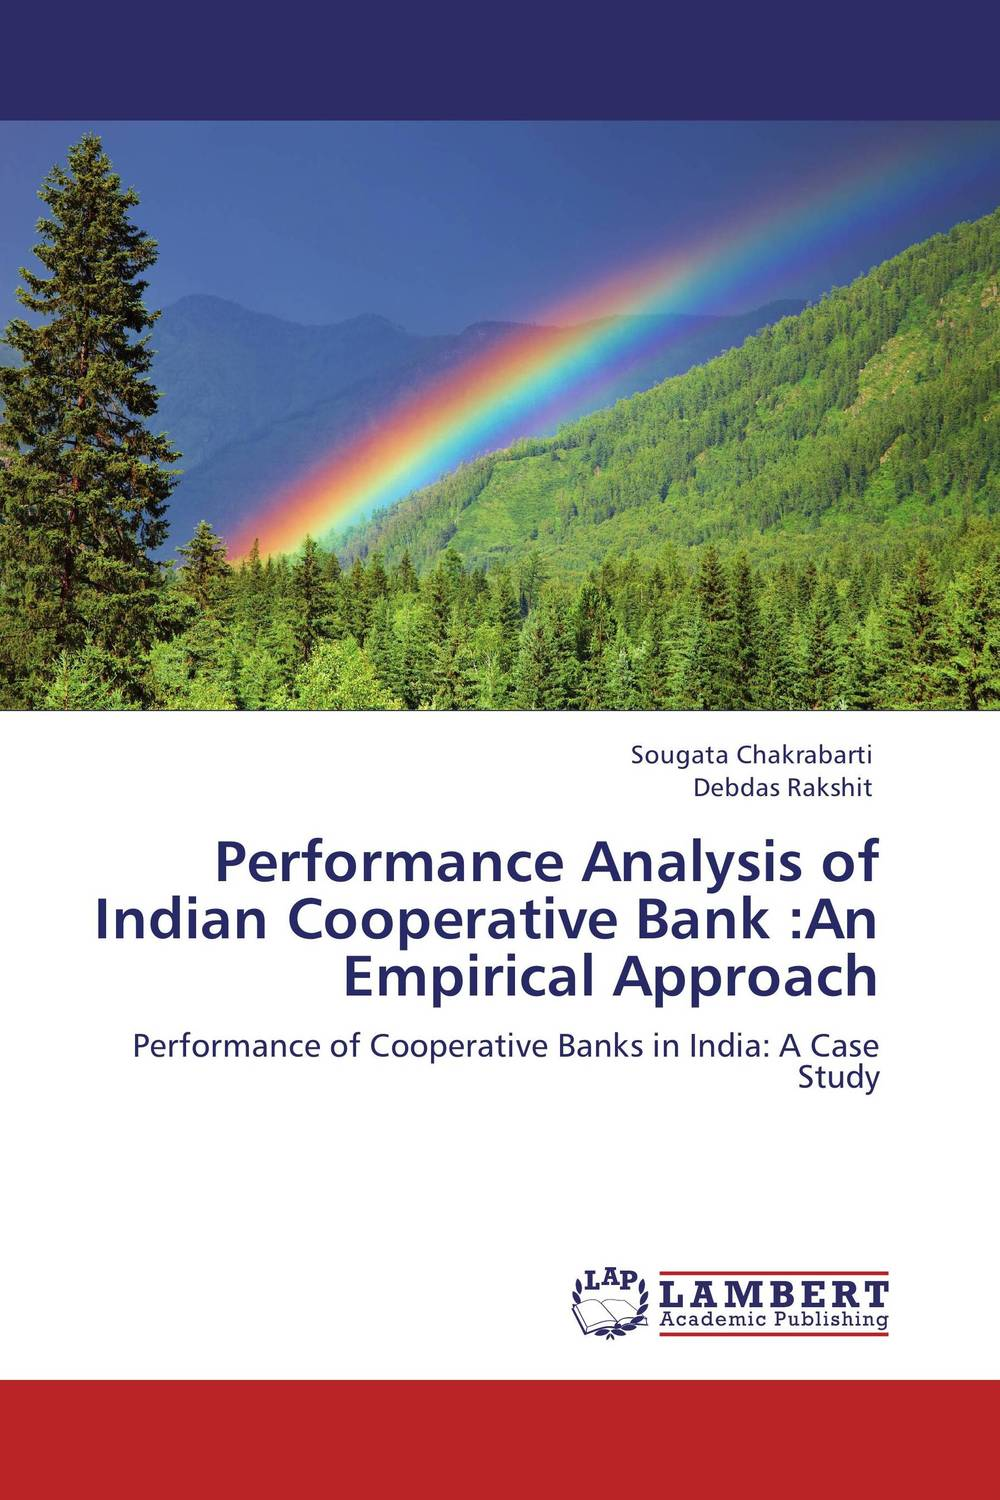 Performance Analysis of Indian Cooperative Bank :An Empirical Approach financial appraisal and comparative analysis of icici bank ltd